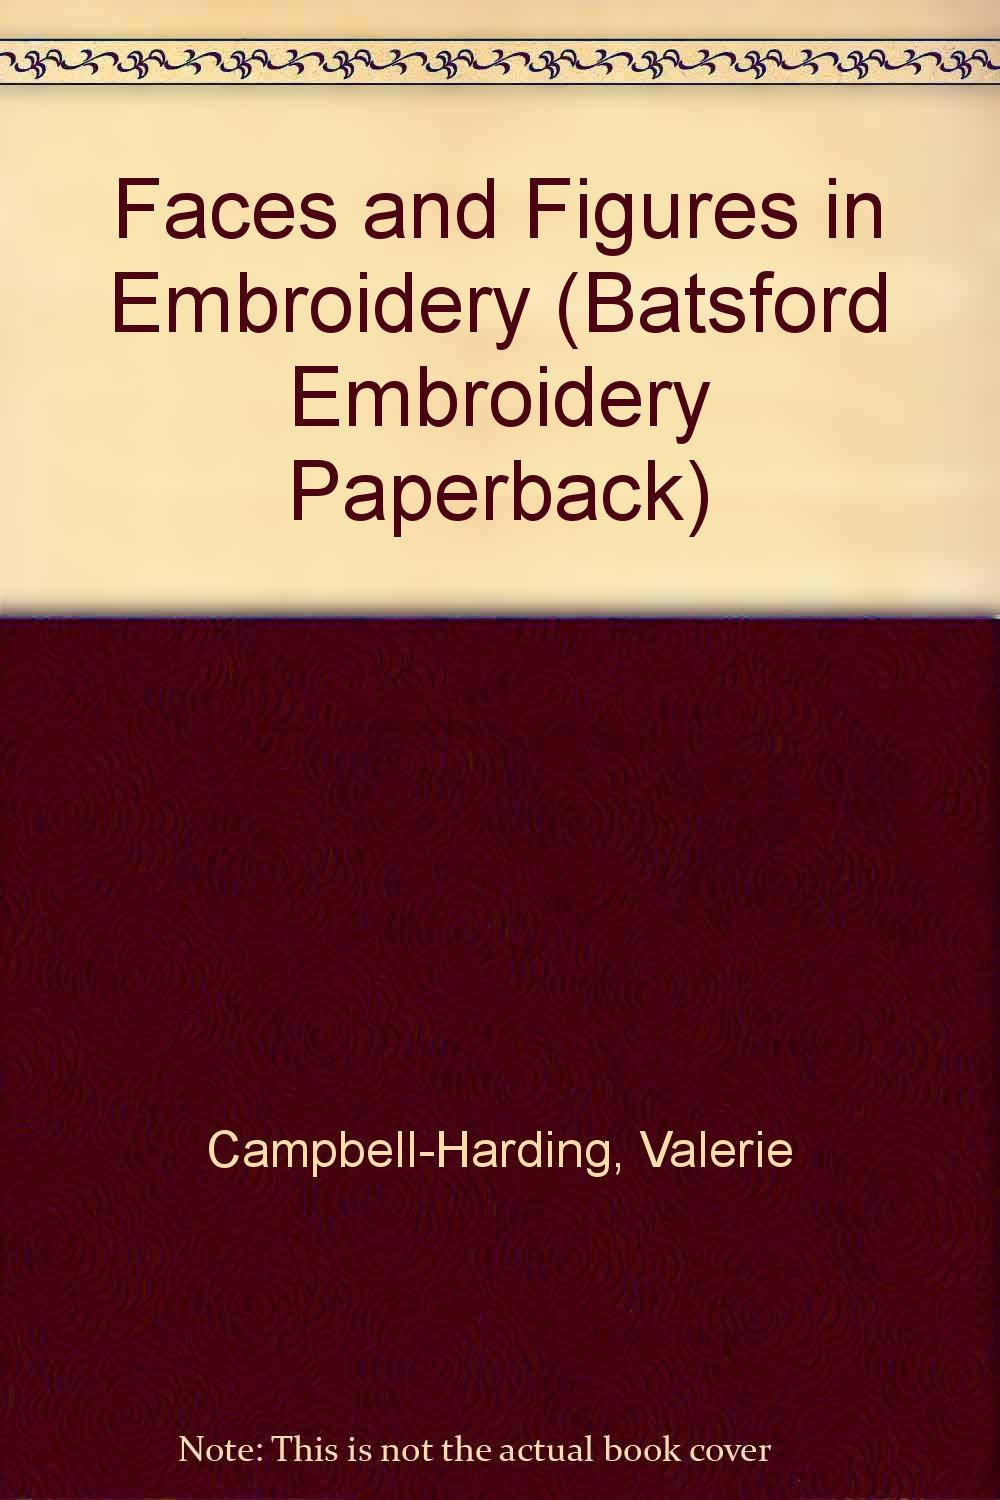 Faces and Figures in Embroidery (Batsford Embroidery Paperback)